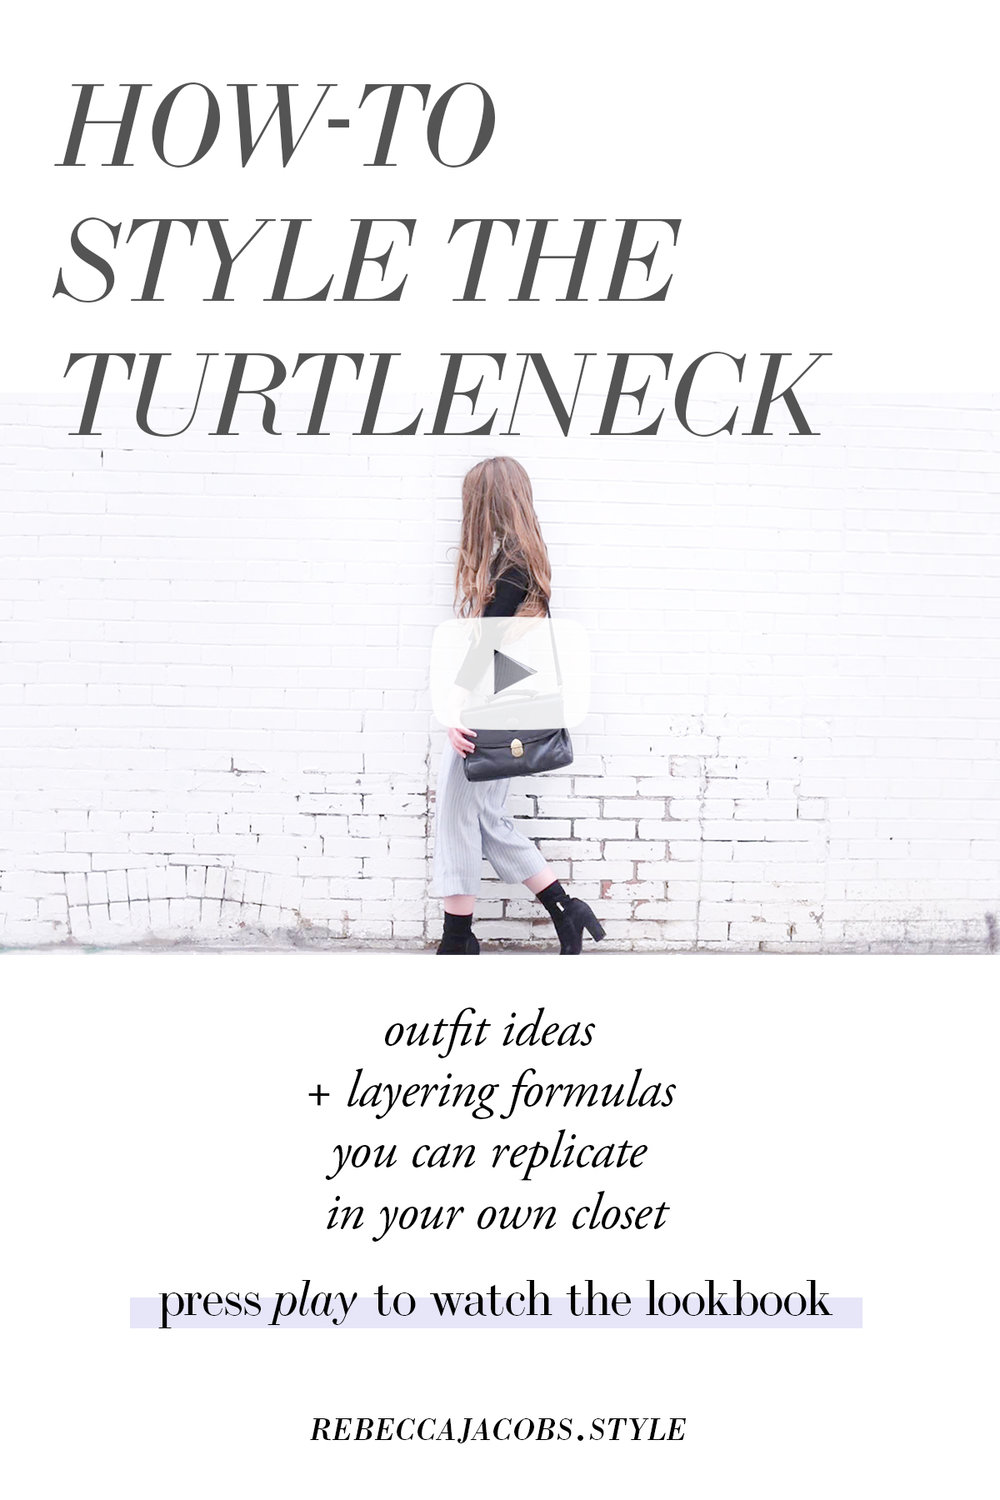 how-to-style-a-turtleneck-masthead.jpg